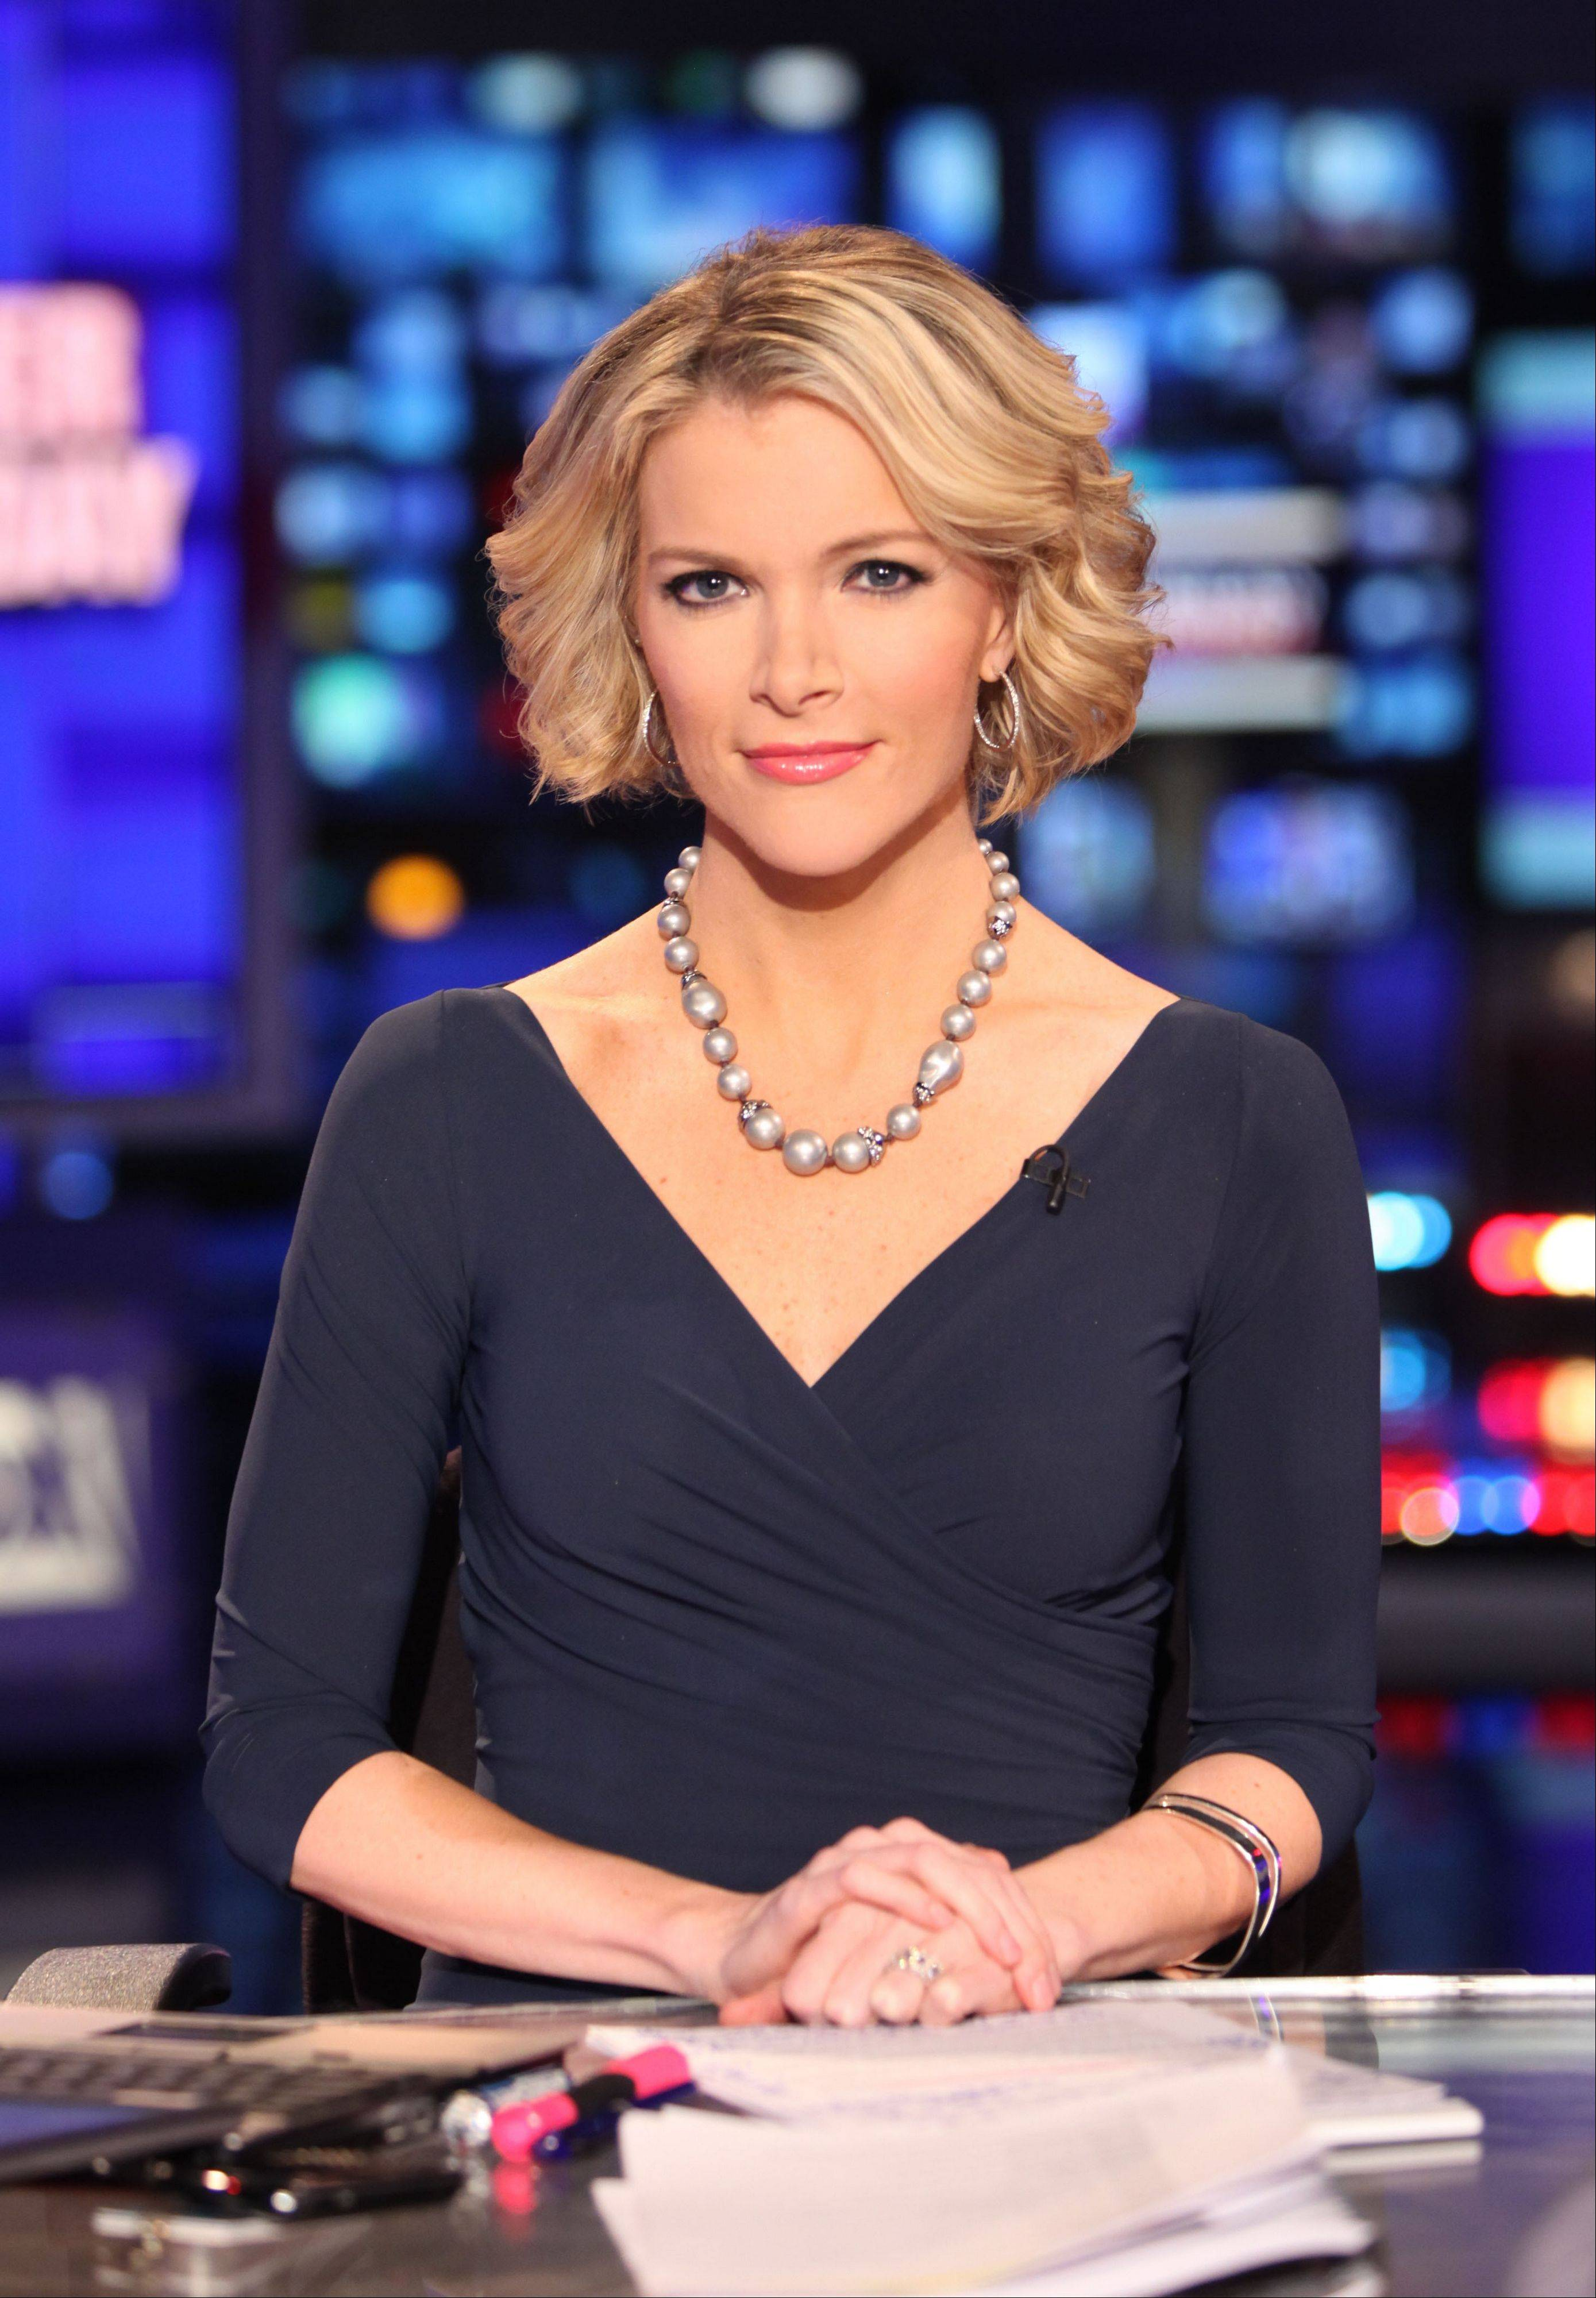 Fox News anchor Megyn Kelly will be in the booth as anchorman with Bret Baier for the 2012 Republican and Democratic conventions.